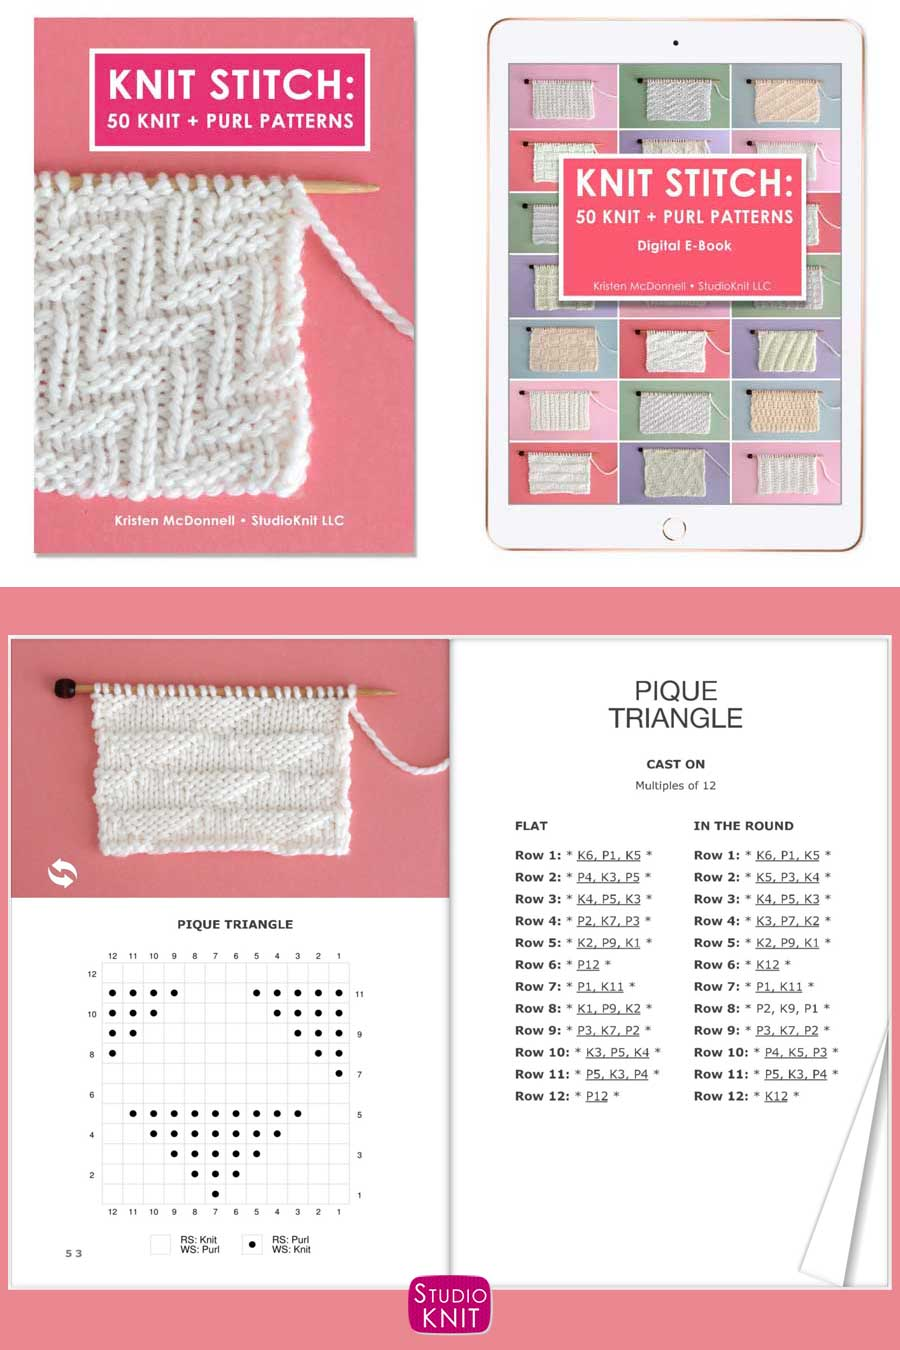 Knit Stitch Pattern Book with Pique Triangles Stitch